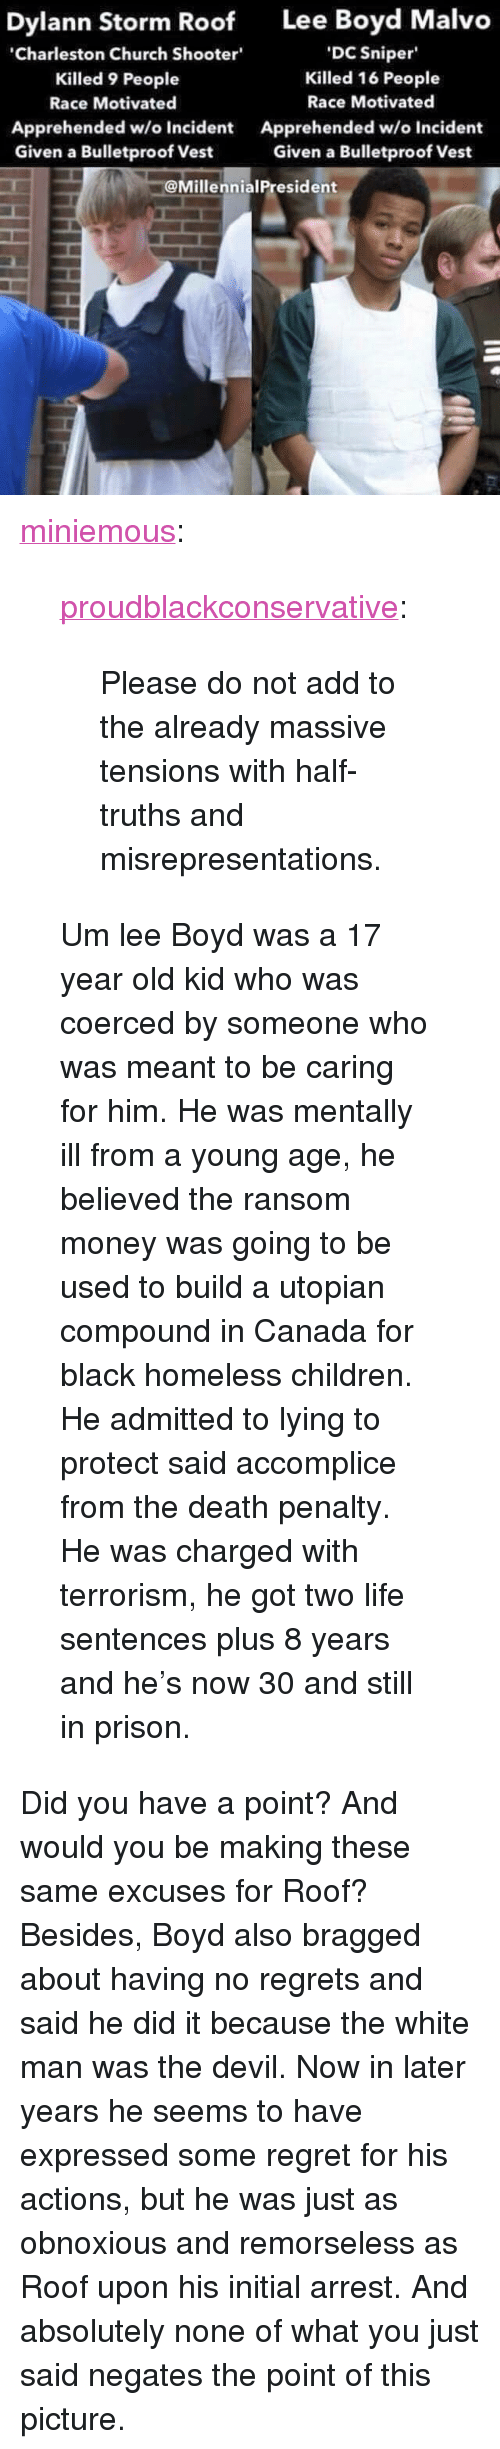 """Children, Church, and Homeless: Dylann Storm Roof  Lee Boyd Malvo  Charleston Church Shooter  Killed 9 People  Race Motivated  Apprehended w/o Incident  Given a Bulletproof Vest  DC Sniper  Killed 16 People  Race Motivated  Apprehended w/o Incident  Given a Bulletproof Vest  @MillennialPresident <p><a href=""""http://miniemous.tumblr.com/post/121950055492/proudblackconservative-please-do-not-add-to-the"""" class=""""tumblr_blog"""">miniemous</a>:</p>  <blockquote><p><a href=""""http://proudblackconservative.tumblr.com/post/121947337324/please-do-not-add-to-the-already-massive-tensions"""" class=""""tumblr_blog"""">proudblackconservative</a>:</p>  <blockquote><p>Please do not add to the already massive tensions with half-truths and misrepresentations.</p></blockquote>  <p>Um lee Boyd was a 17 year old kid who was coerced by someone who was meant to be caring for him. He was mentally ill from a young age, he believed the ransom money was going to be used to build a utopian compound in Canada for black homeless children. He admitted to lying to protect said accomplice from the death penalty. He was charged with terrorism, he got two life sentences plus 8 years and he's now 30 and still in prison.</p></blockquote>  <p>Did you have a point? And would you be making these same excuses for Roof? Besides, Boyd also bragged about having no regrets and said he did it because the white man was the devil. Now in later years he seems to have expressed some regret for his actions, but he was just as obnoxious and remorseless as Roof upon his initial arrest. And absolutely none of what you just said negates the point of this picture.</p>"""